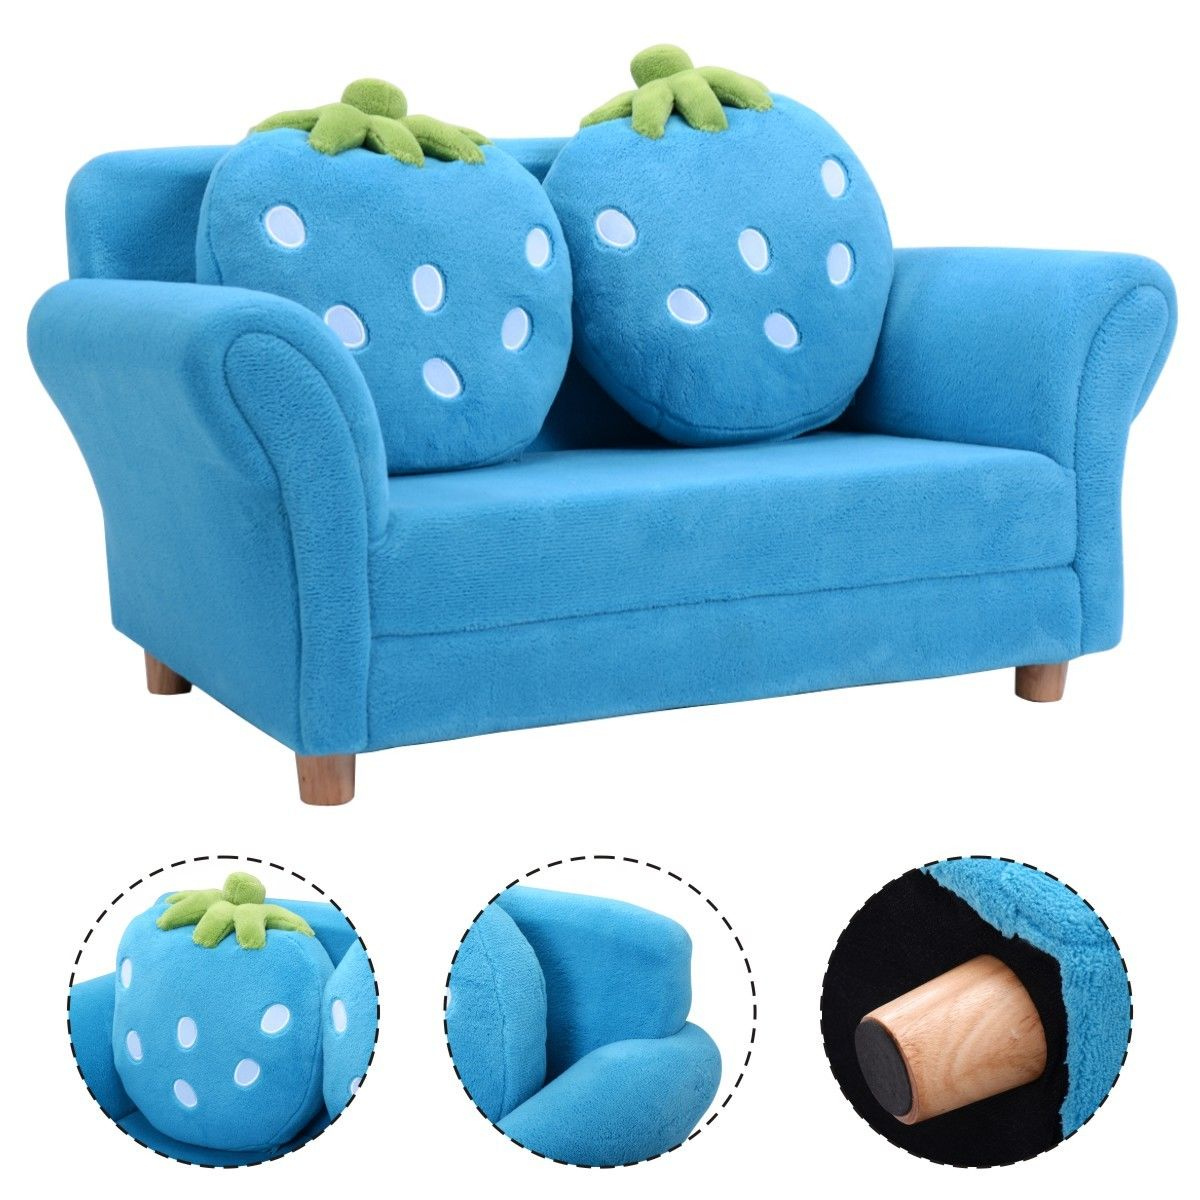 Costway Kids Sofa Strawberry Armrest Chair Lounge Couch w/2 Pillow Children Toddler Blue